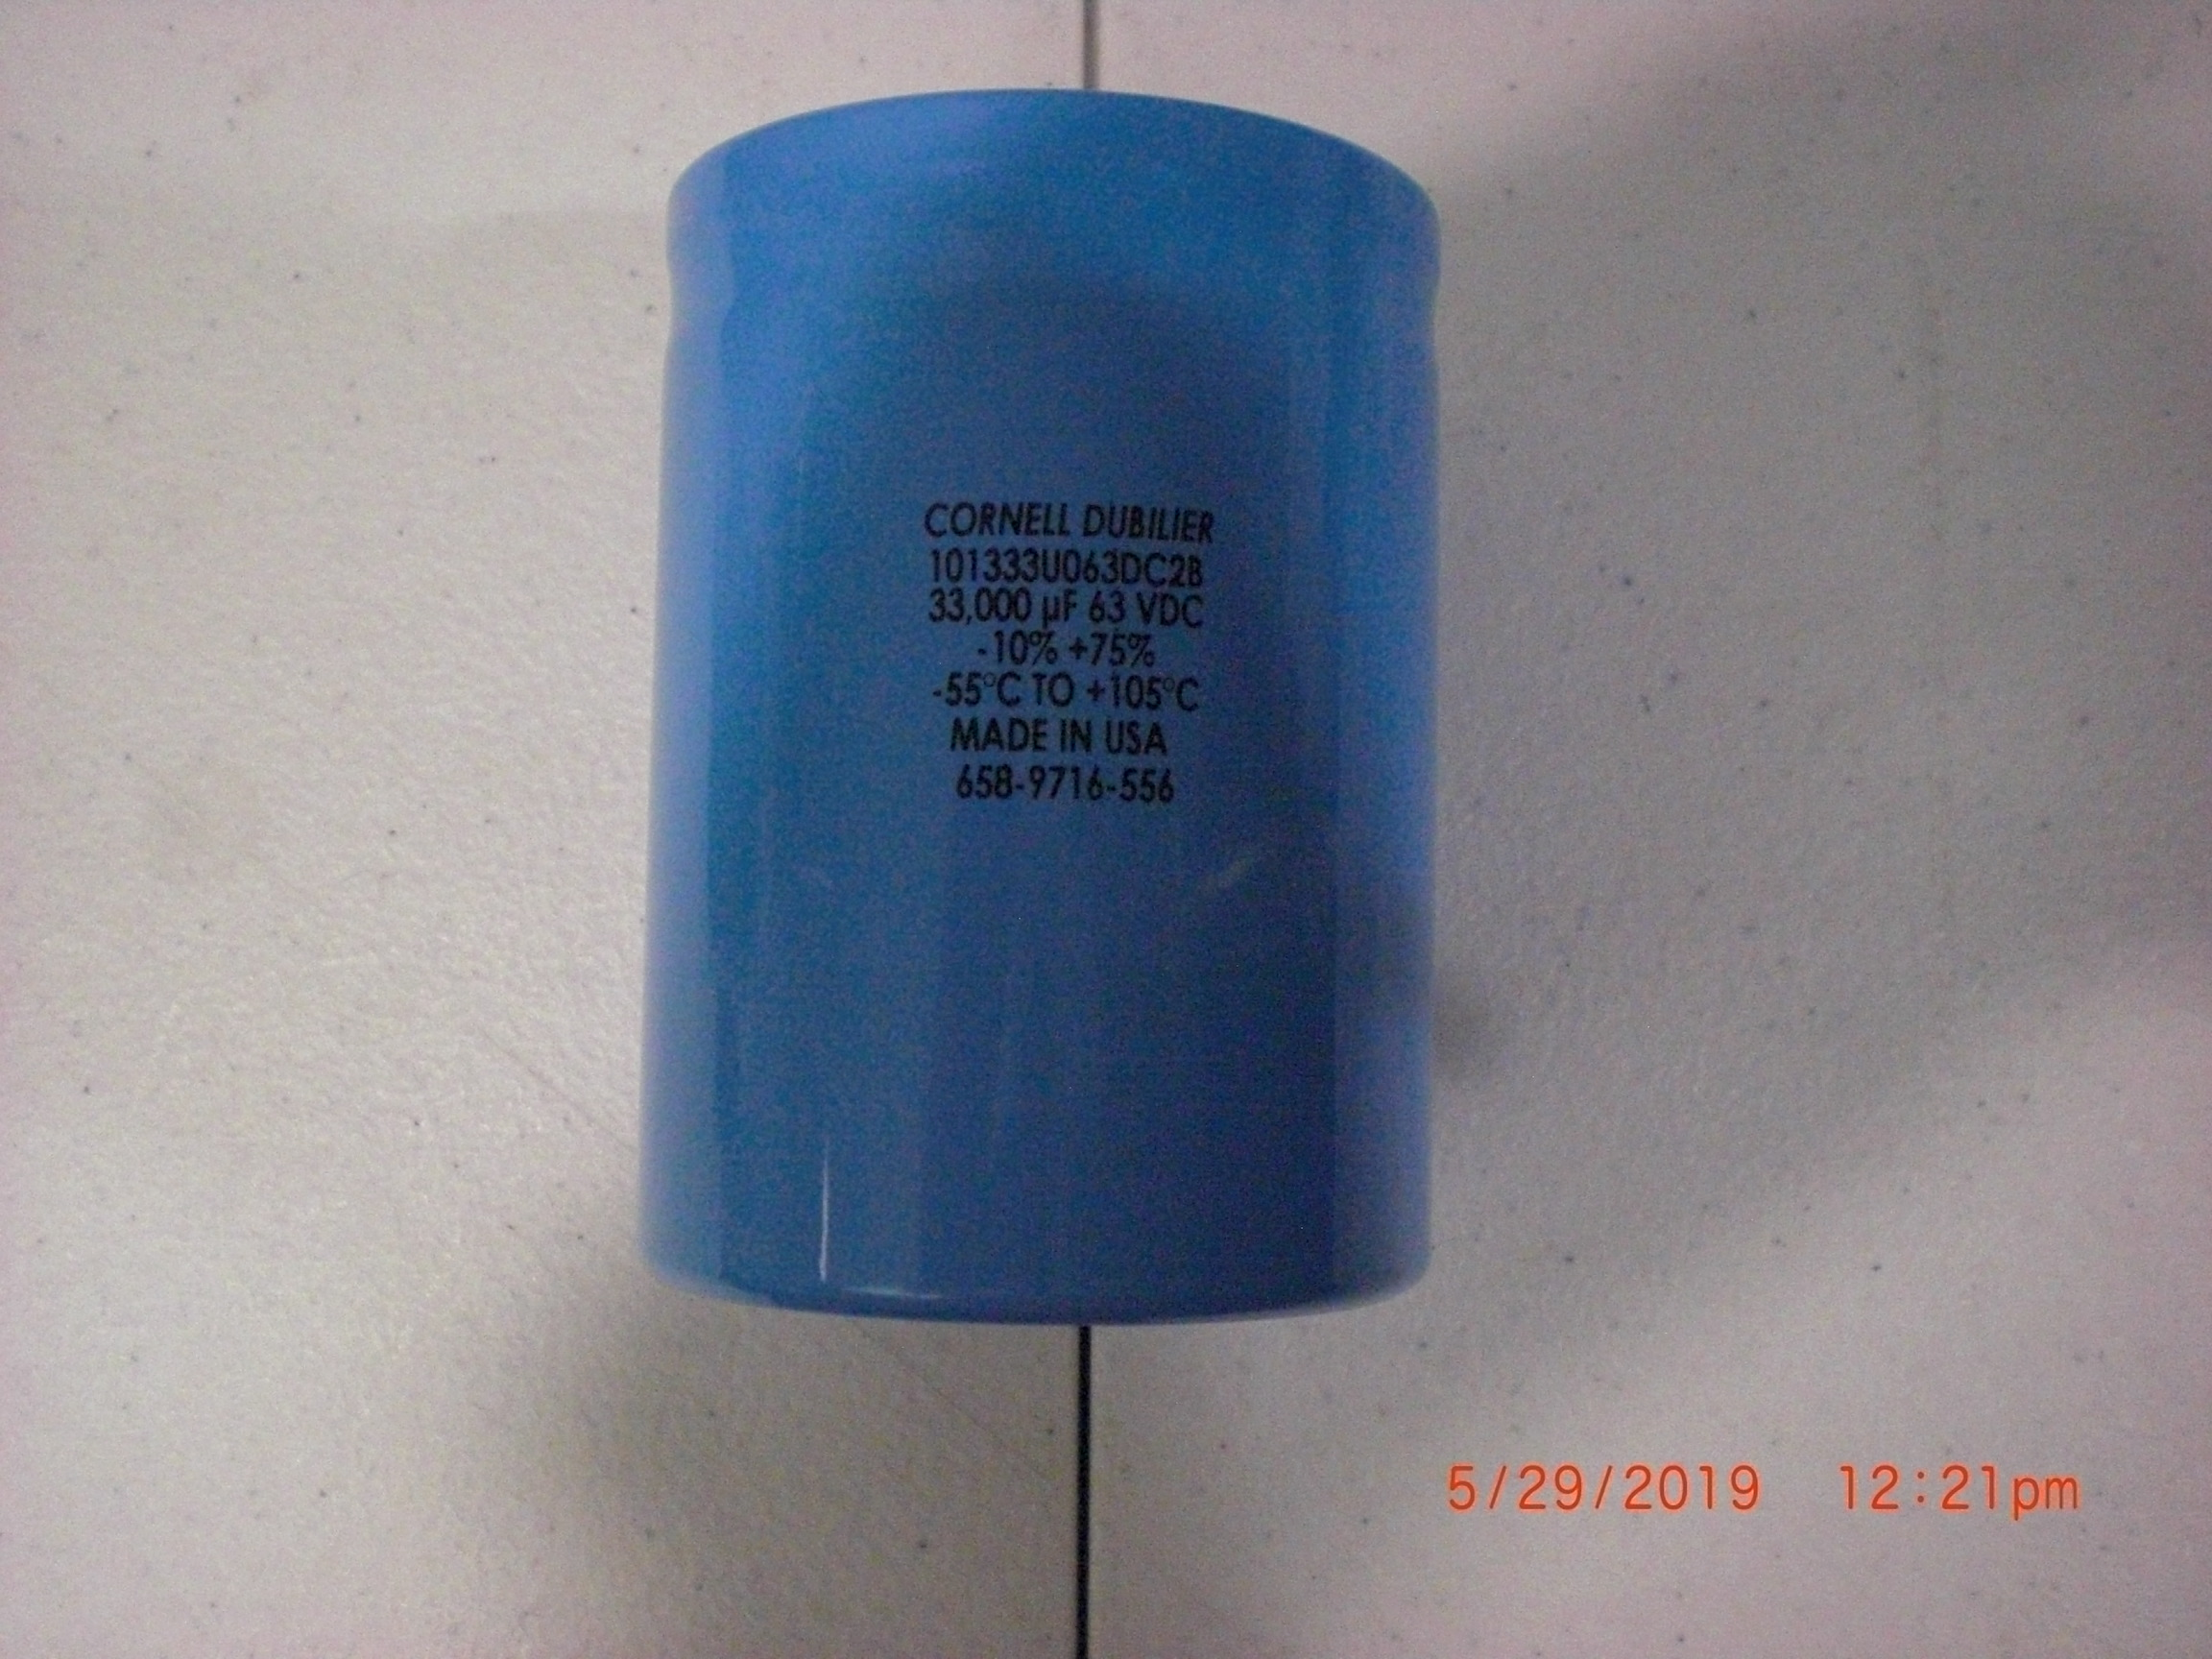 Electrical CORNELL-DUBILIER 101333U63DC2B Capacitor- 33000uF 63V -10% + 75% tol